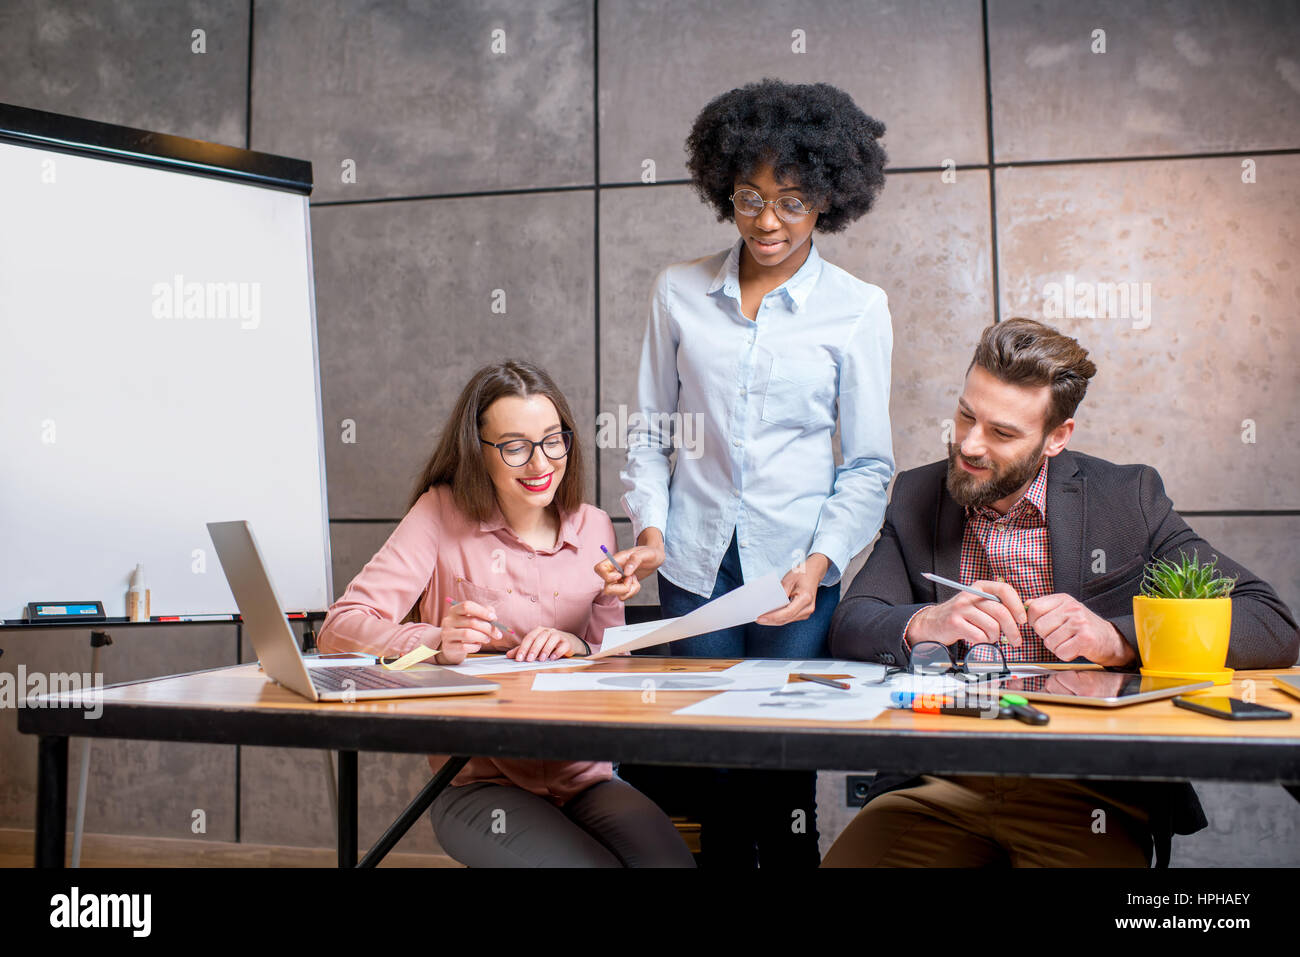 Coworkers working together indoors - Stock Image